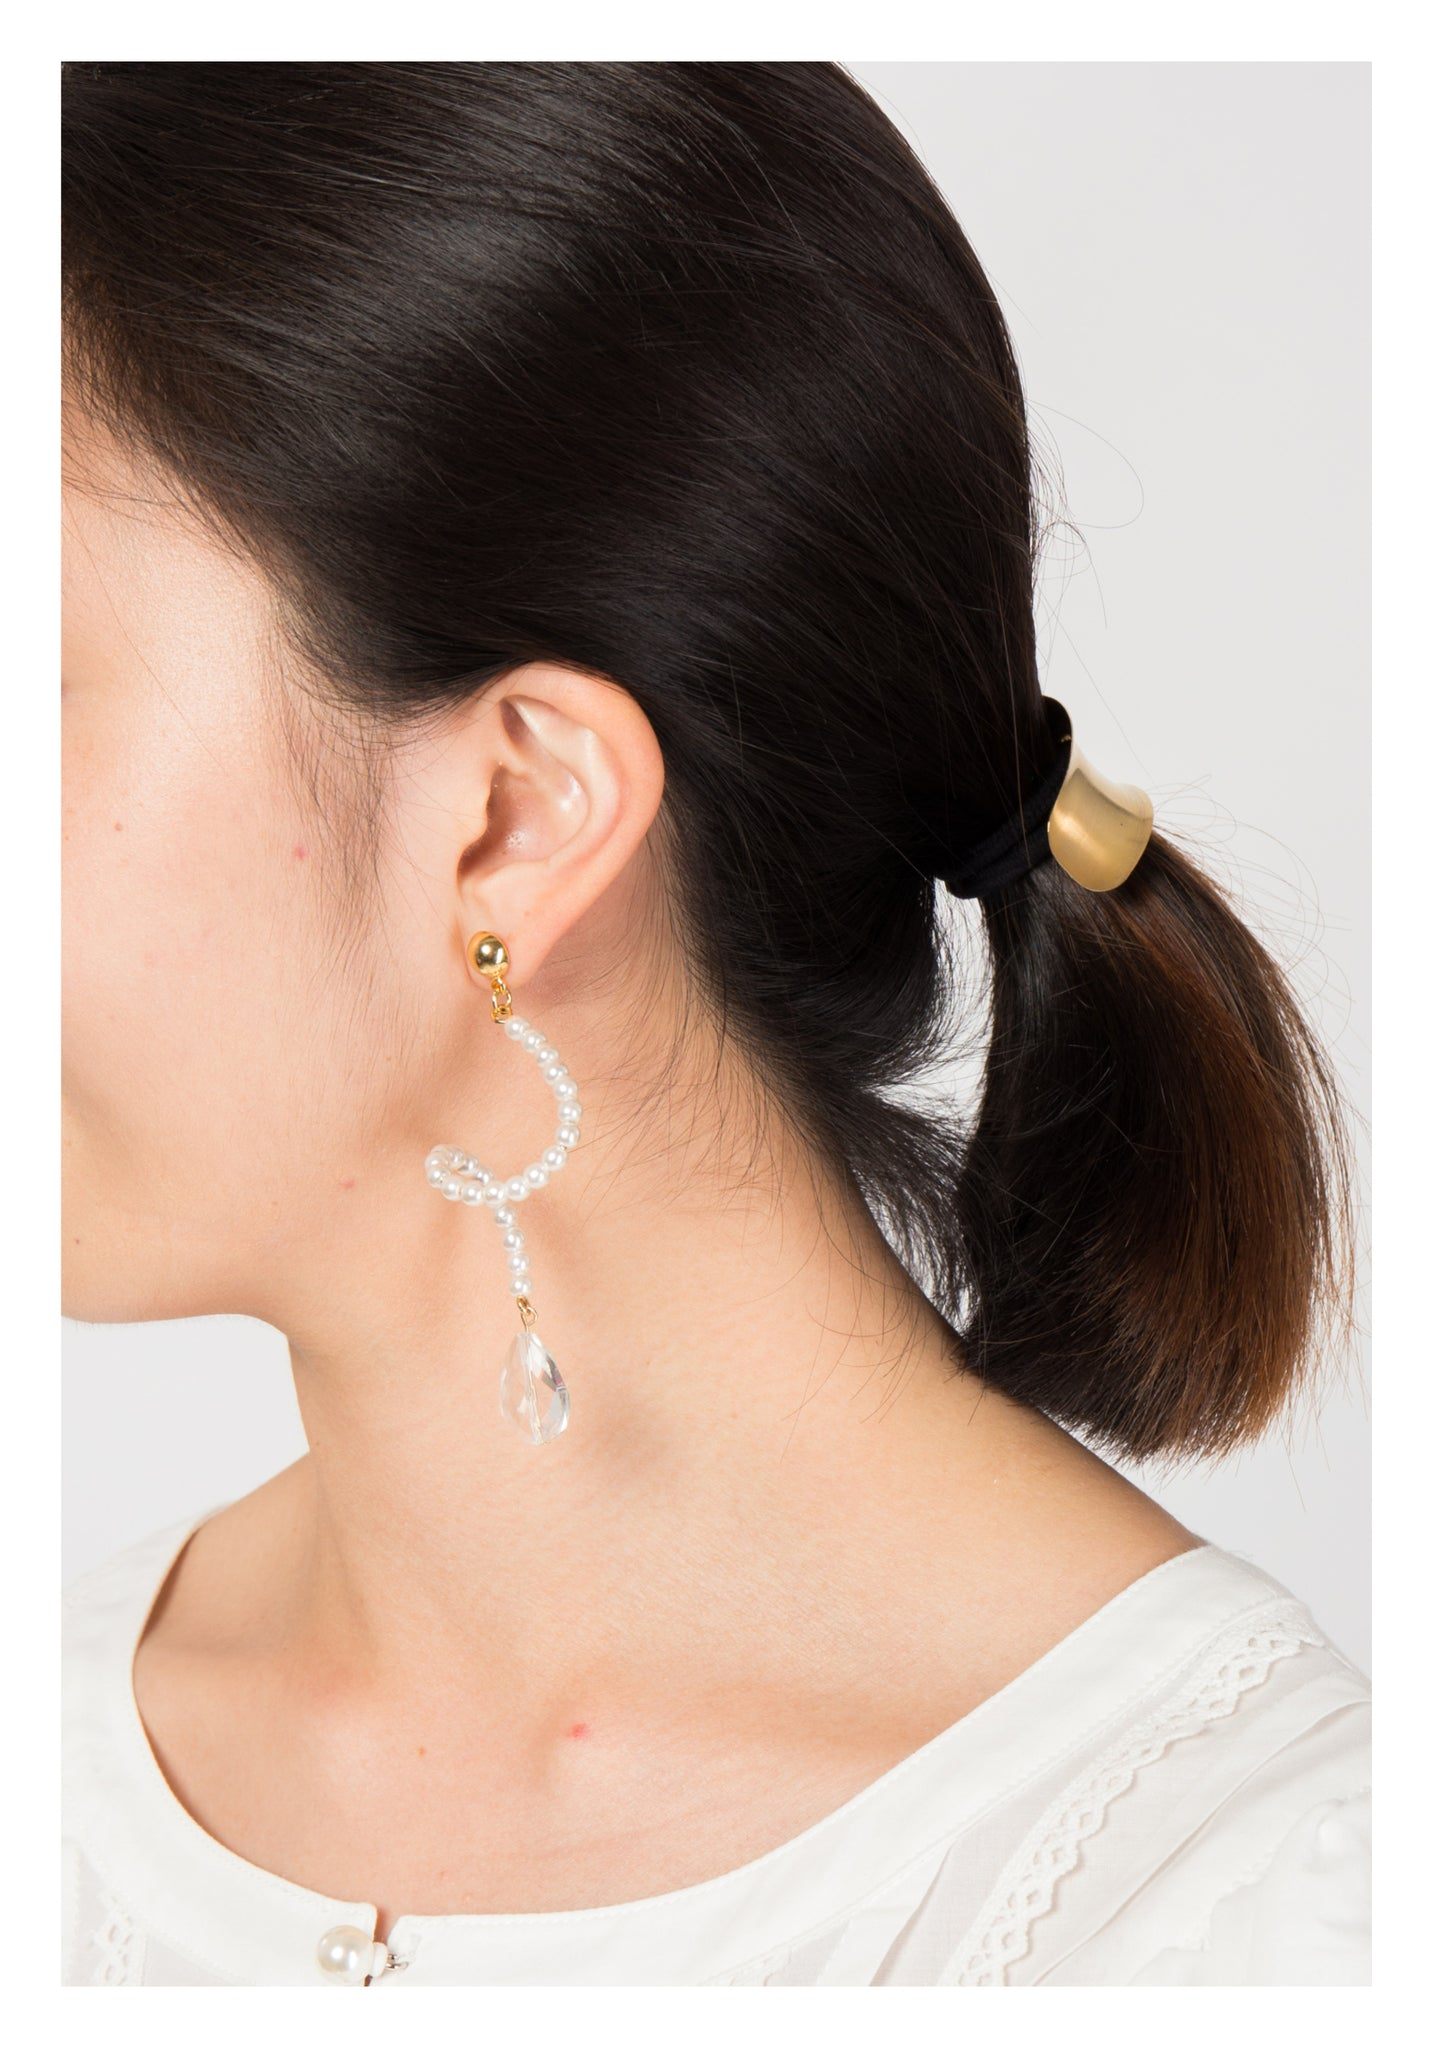 Spiral Pearl Dripping Earrings - whoami